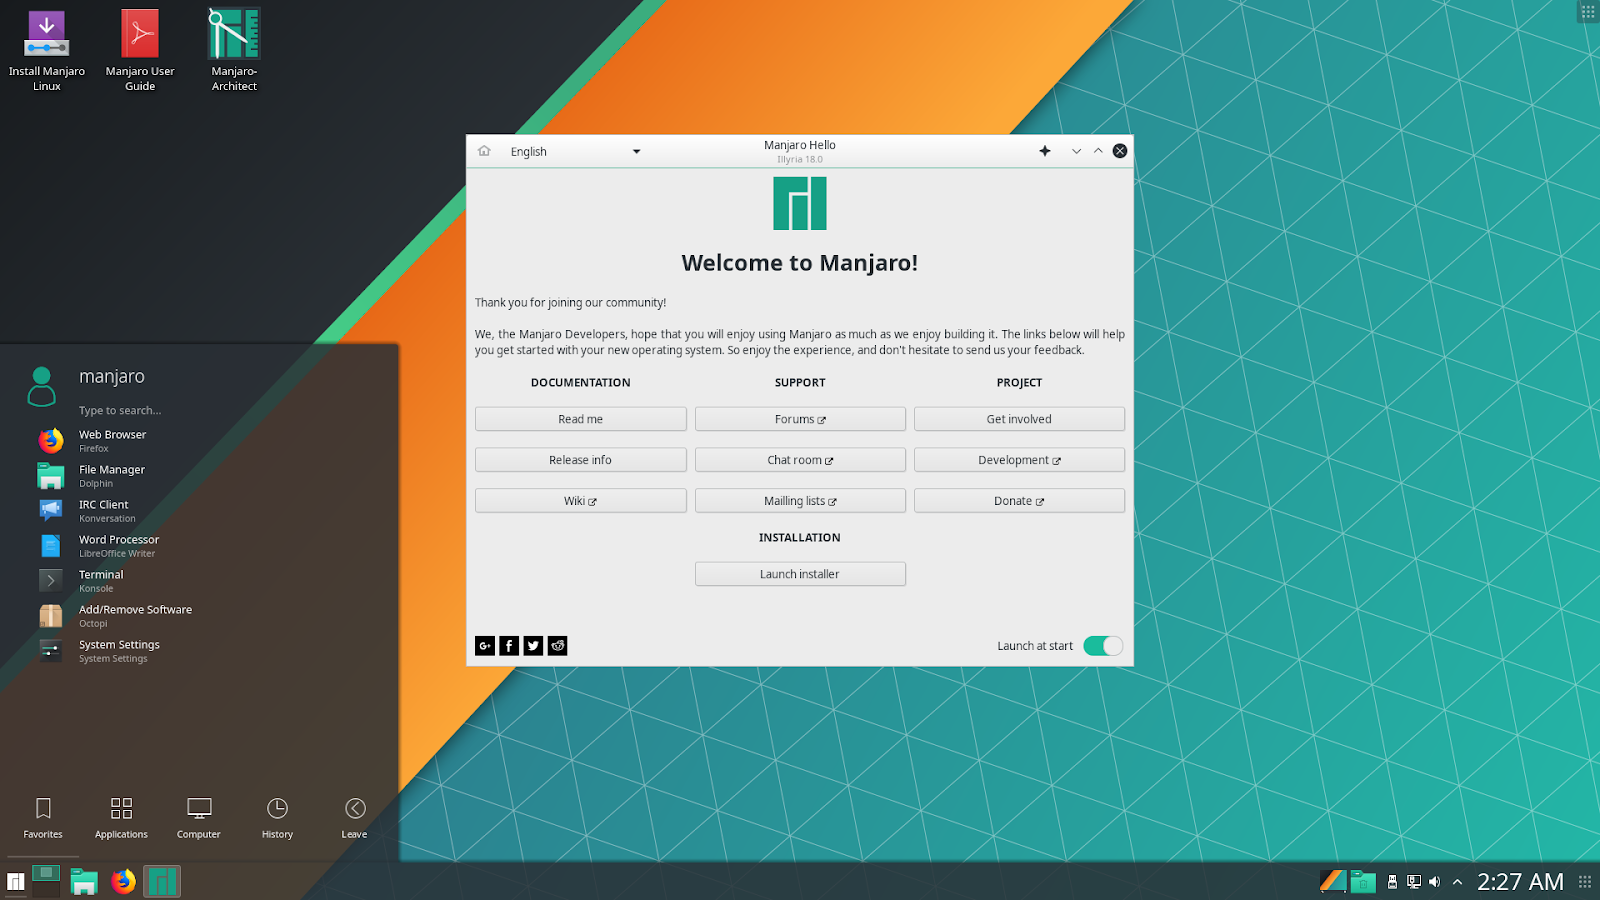 Manjaro Linux 18 0 'Illyria' Released and Available to Download